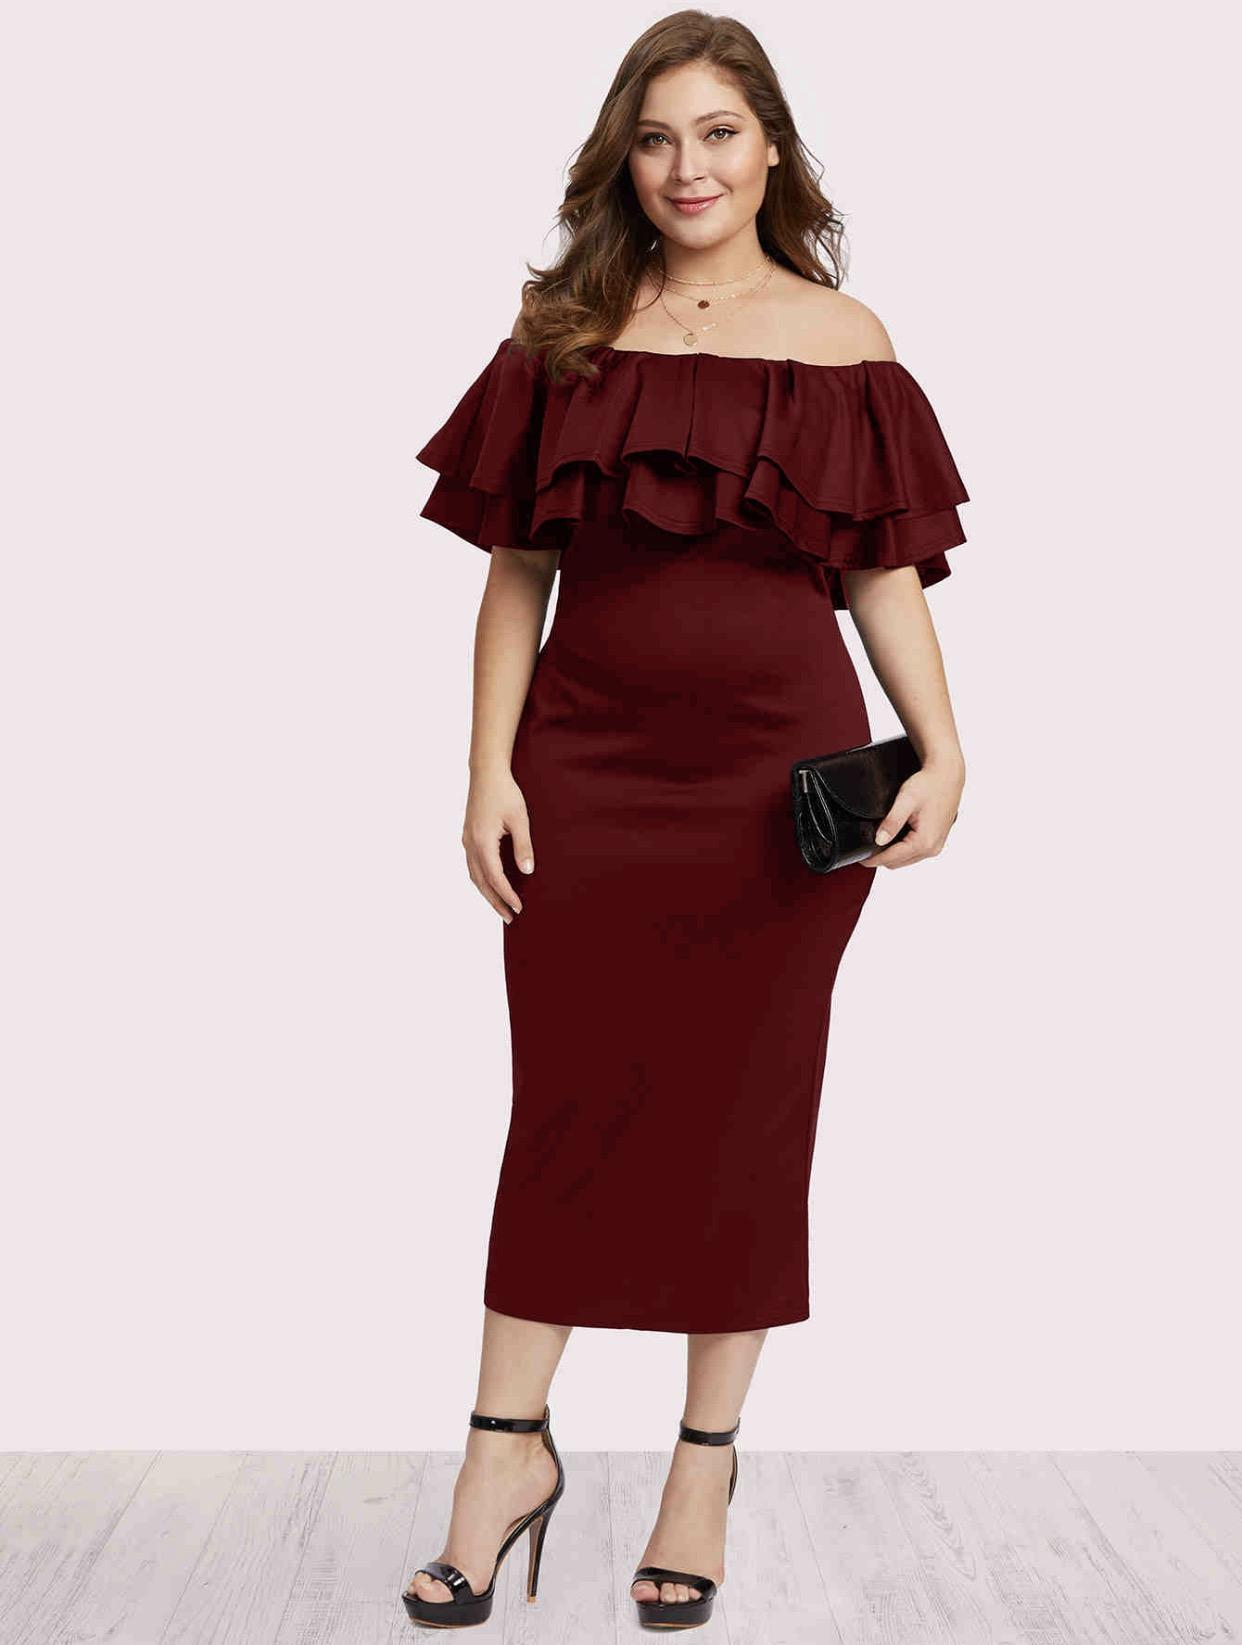 0353d3a3a922 Plus Size Dresses for sale - Plus Size Maxi Dress Online Deals ...